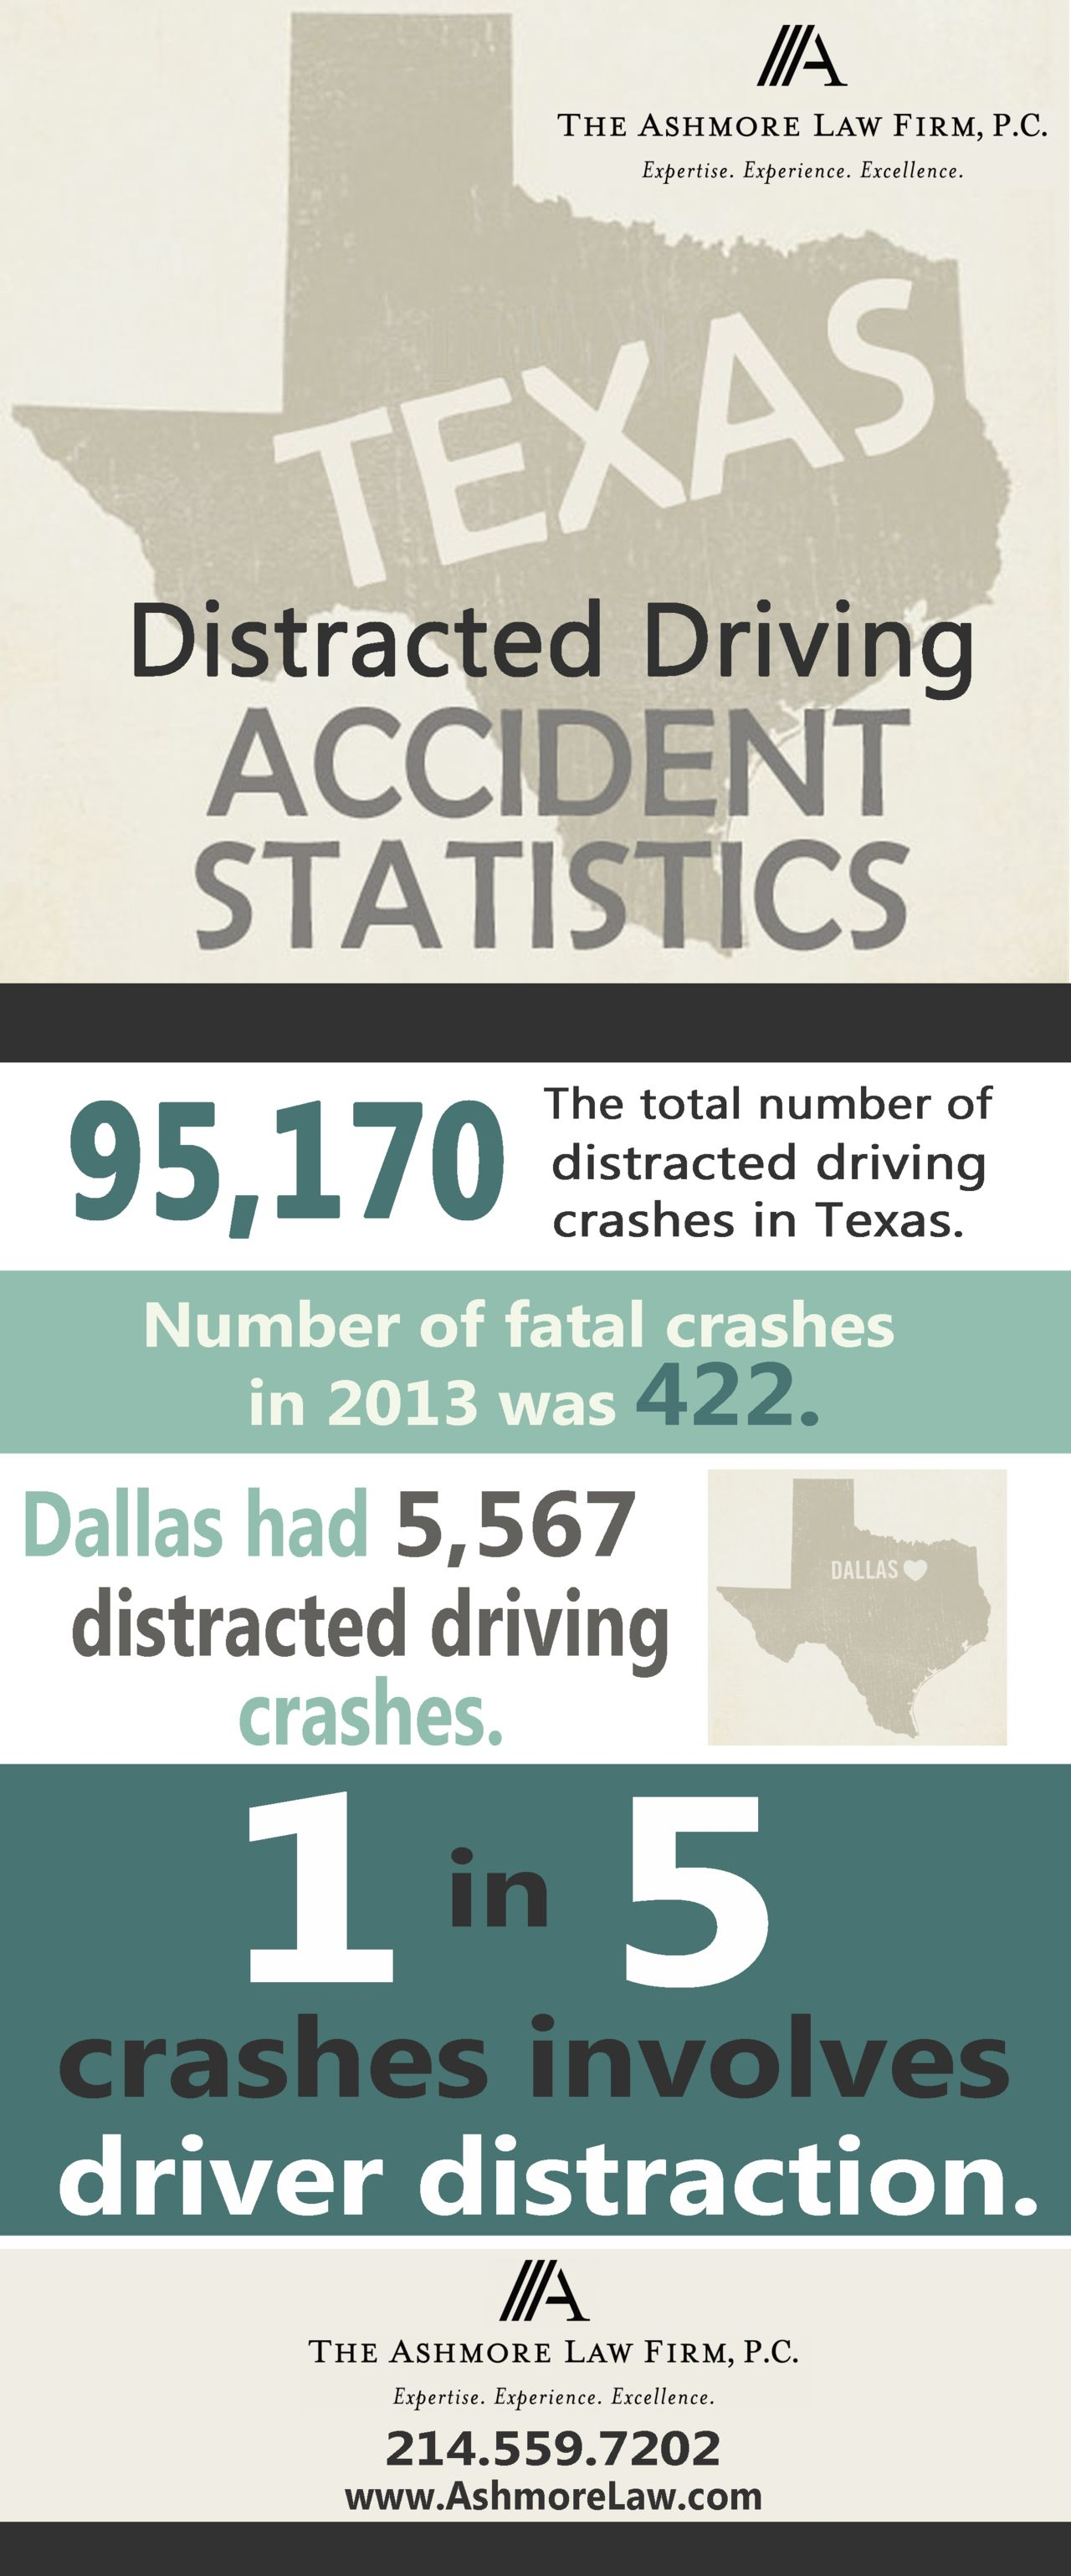 National Distracted Driving Accident Statistics